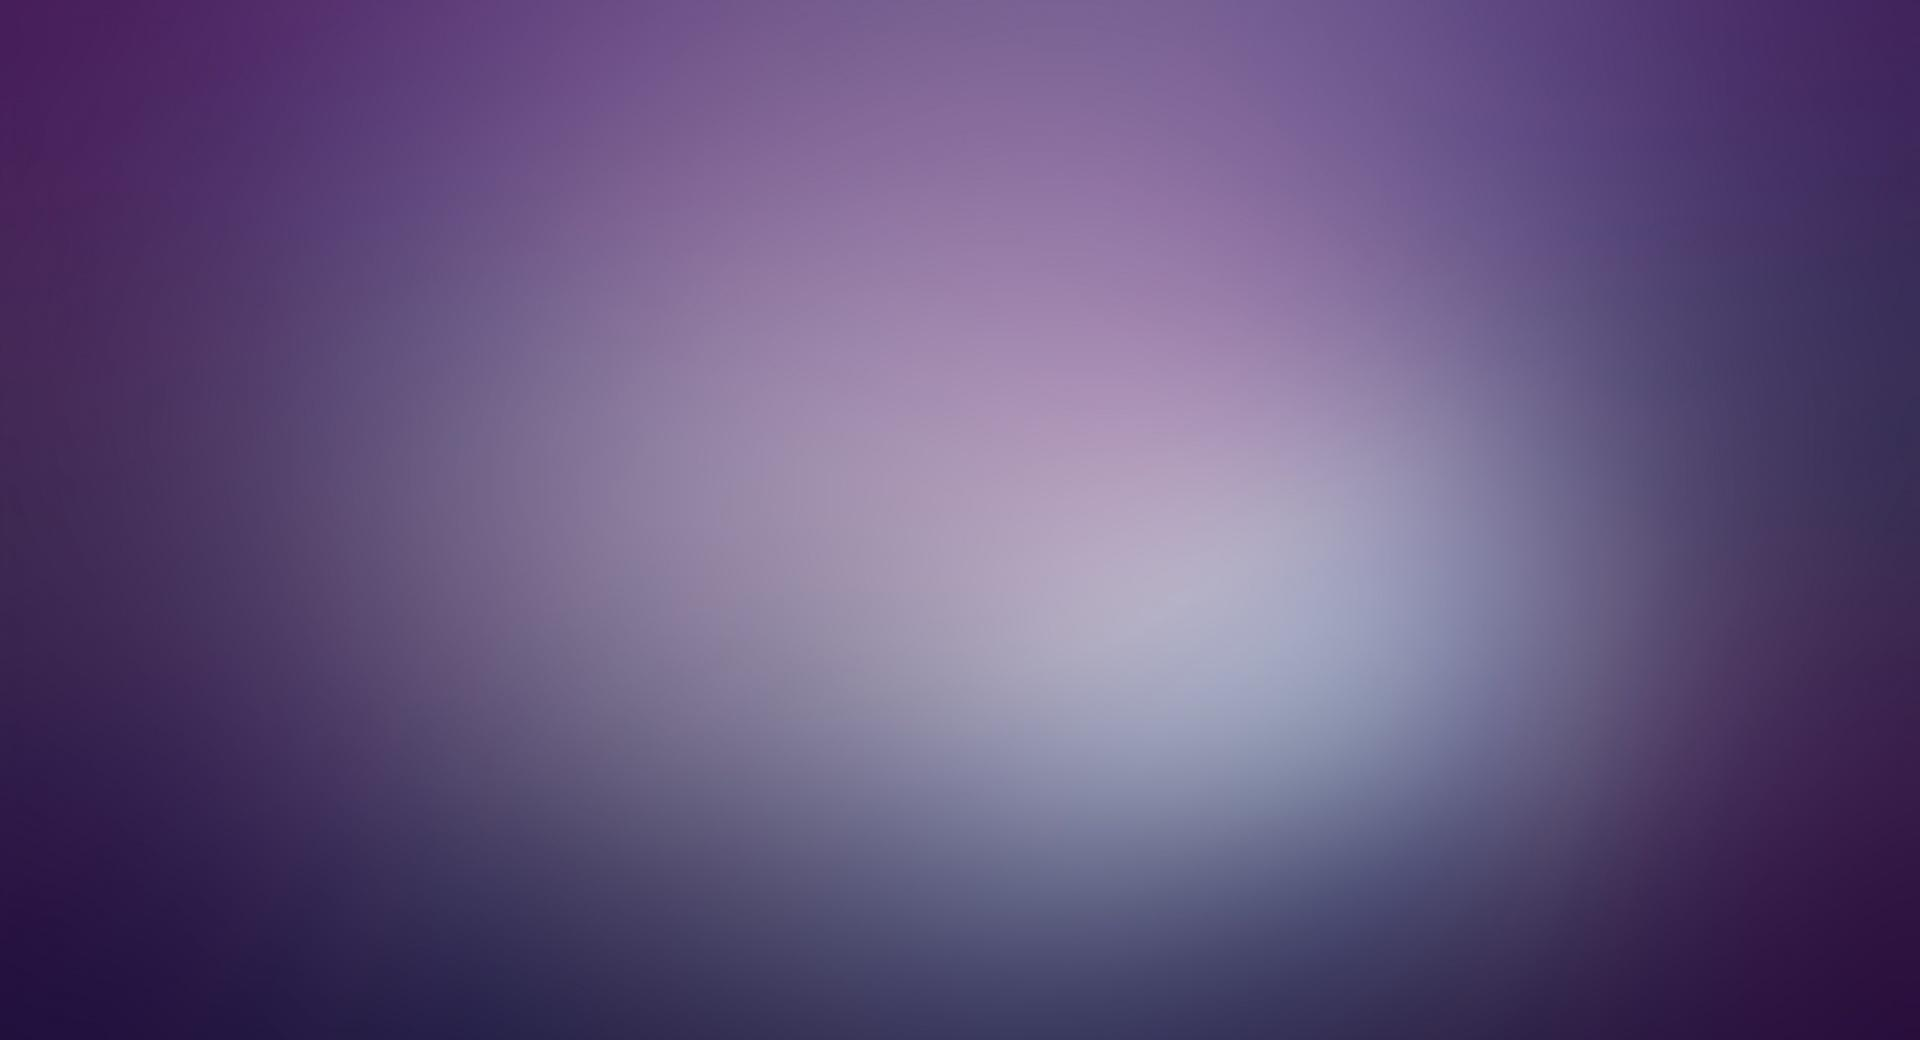 Light Purple wallpapers HD quality